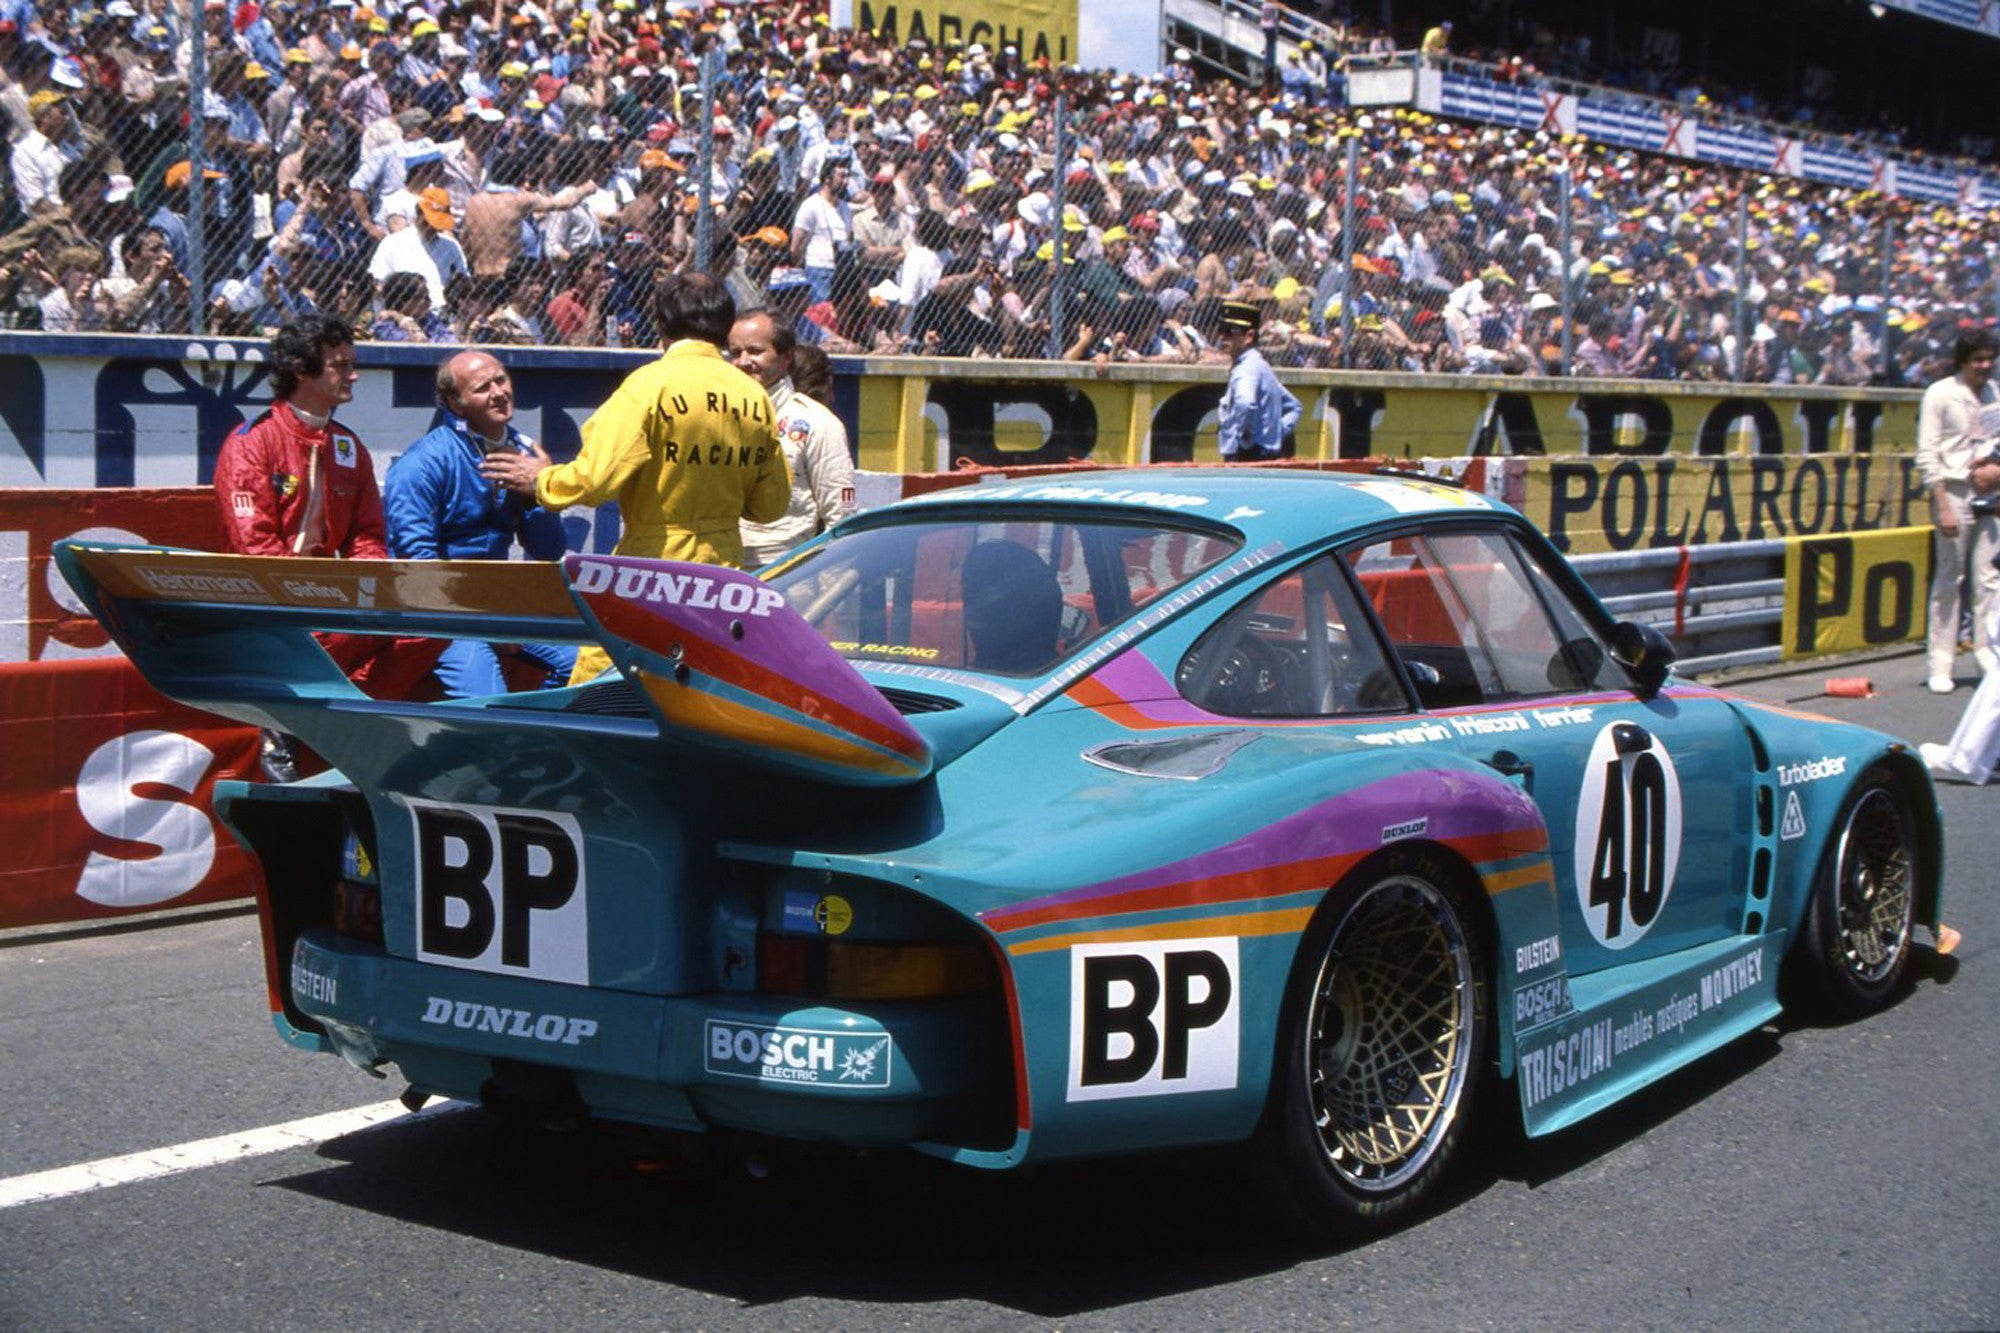 Laurent Ferrier racing Porsche 935 at Le Mans